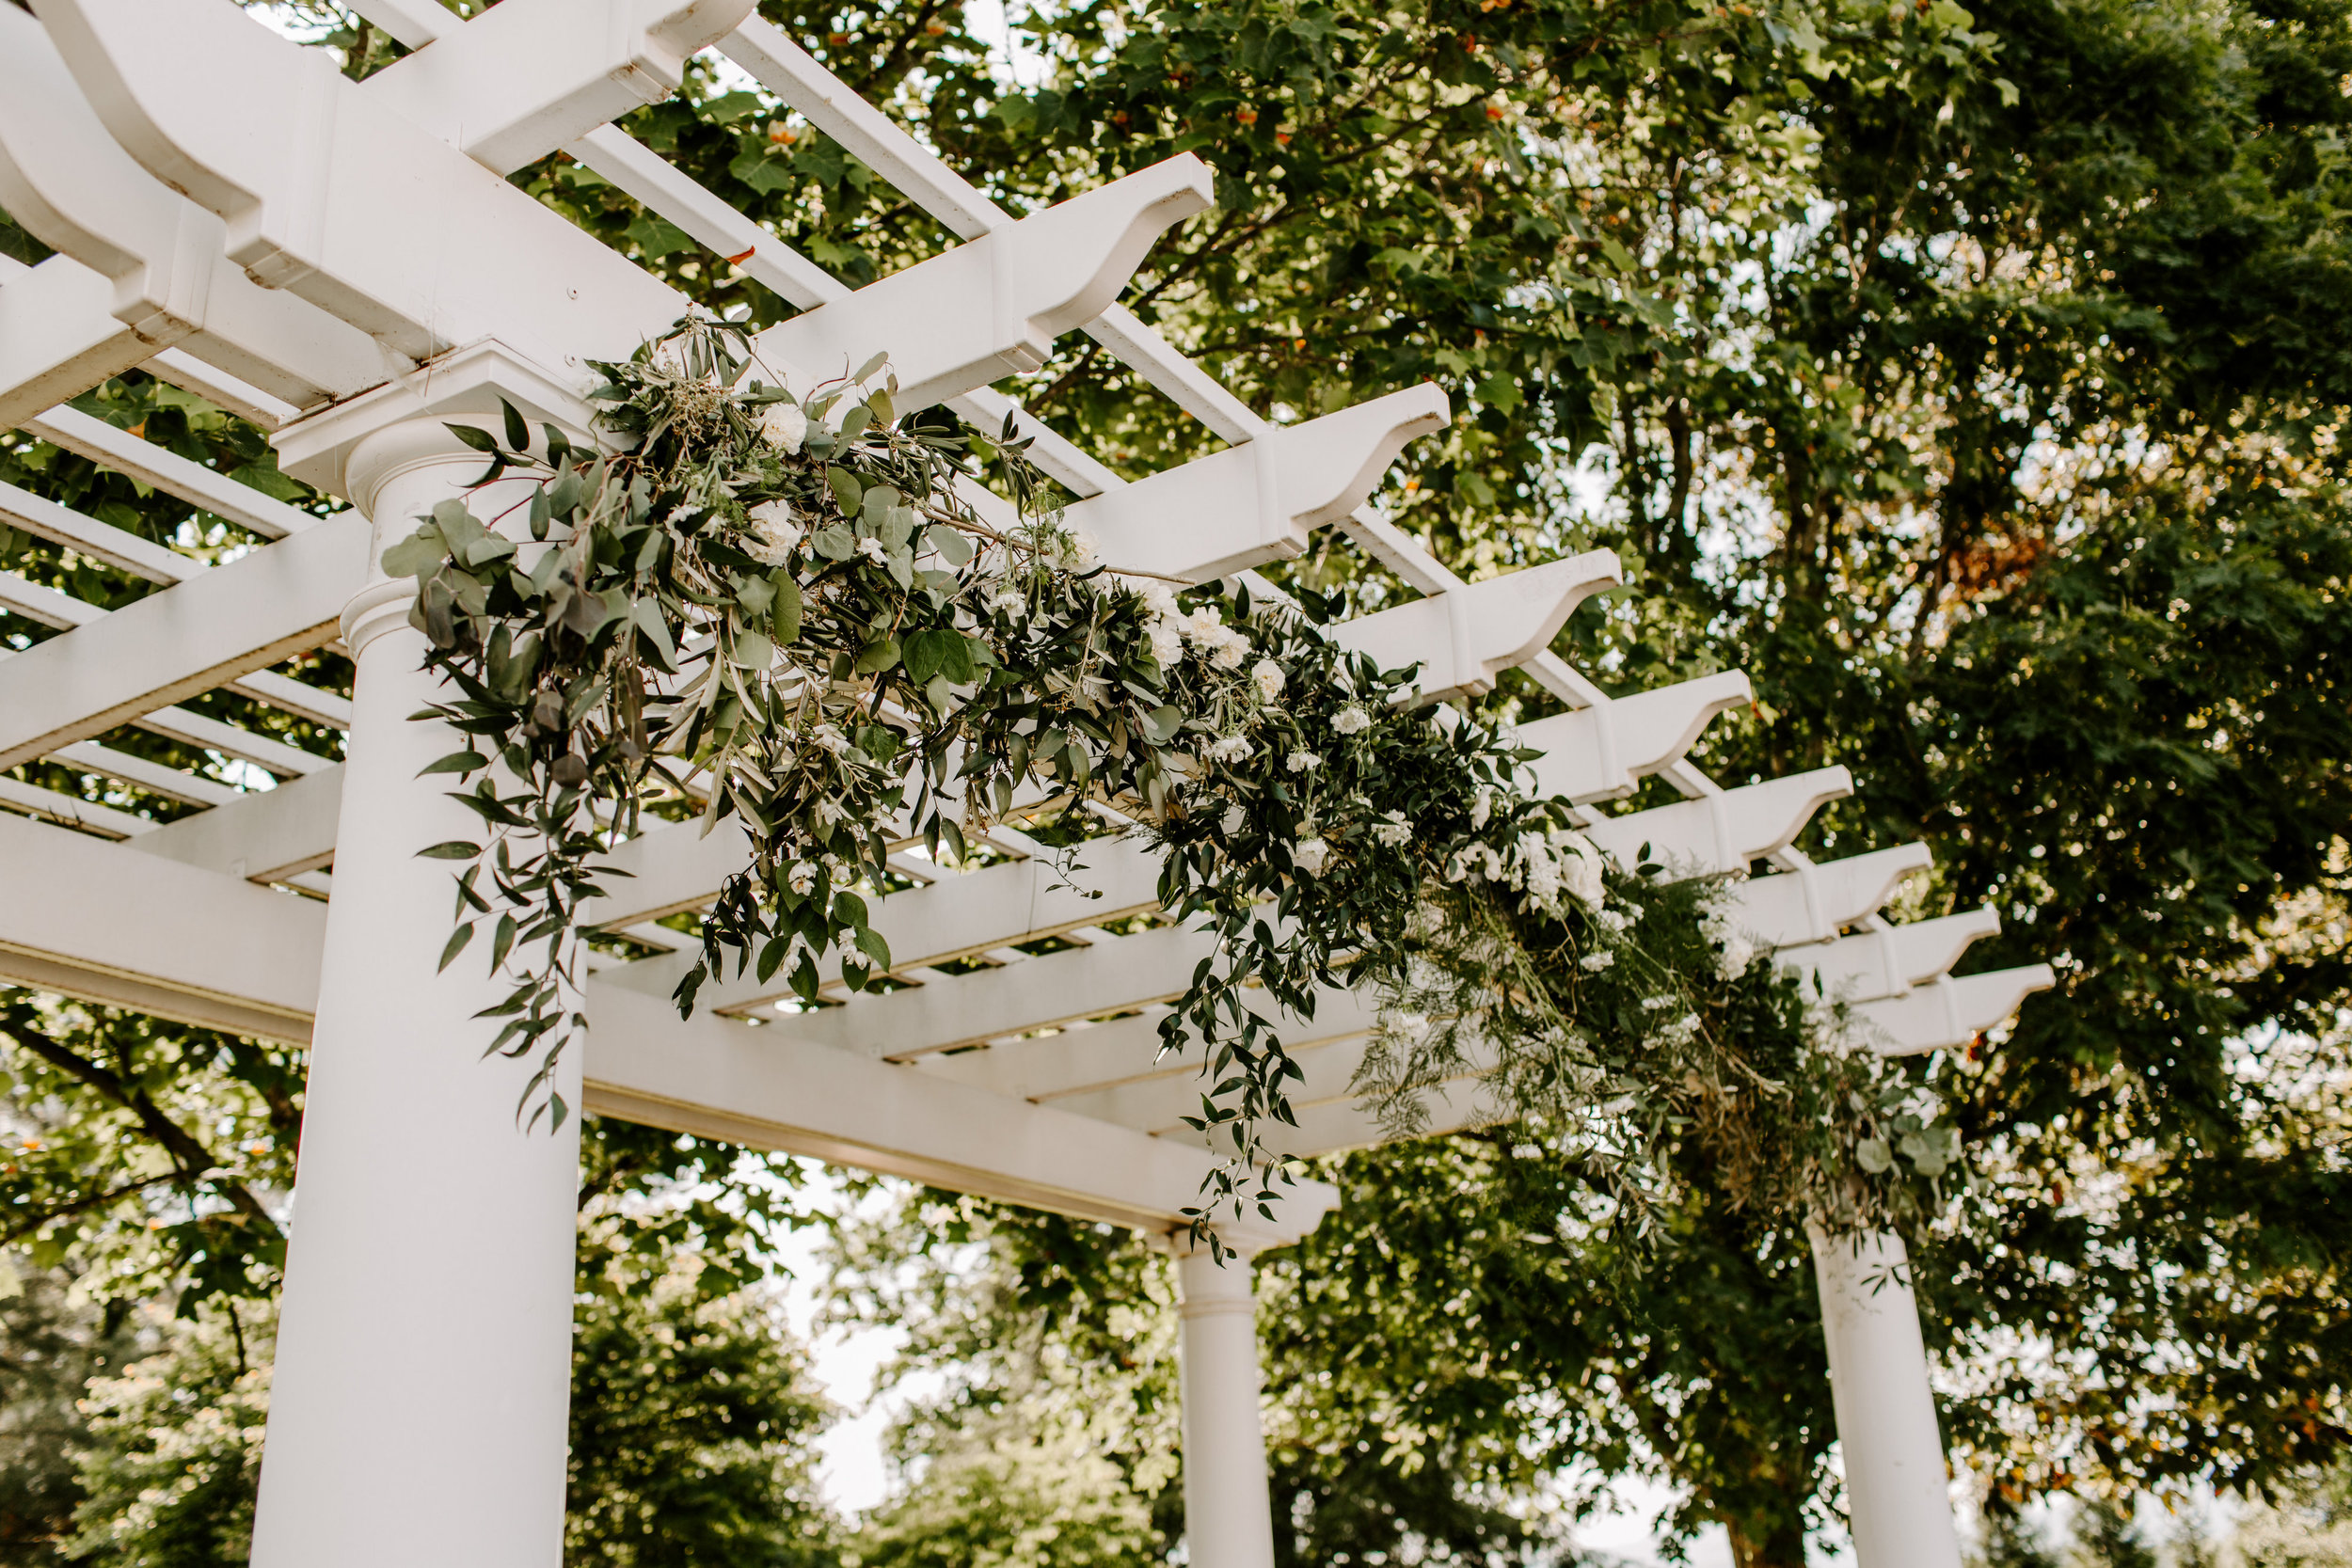 This sweet couple kept their wedding day floral aesthetic simple in color, but rich in texture. Salmon toned florals paired perfectly with the bridesmaids' gowns, while the bride carried a bouquet with white roses. The ceremony took place under a gazebo clad with greenery - the theme continued into the reception, with ferns and eucalyptus all around.